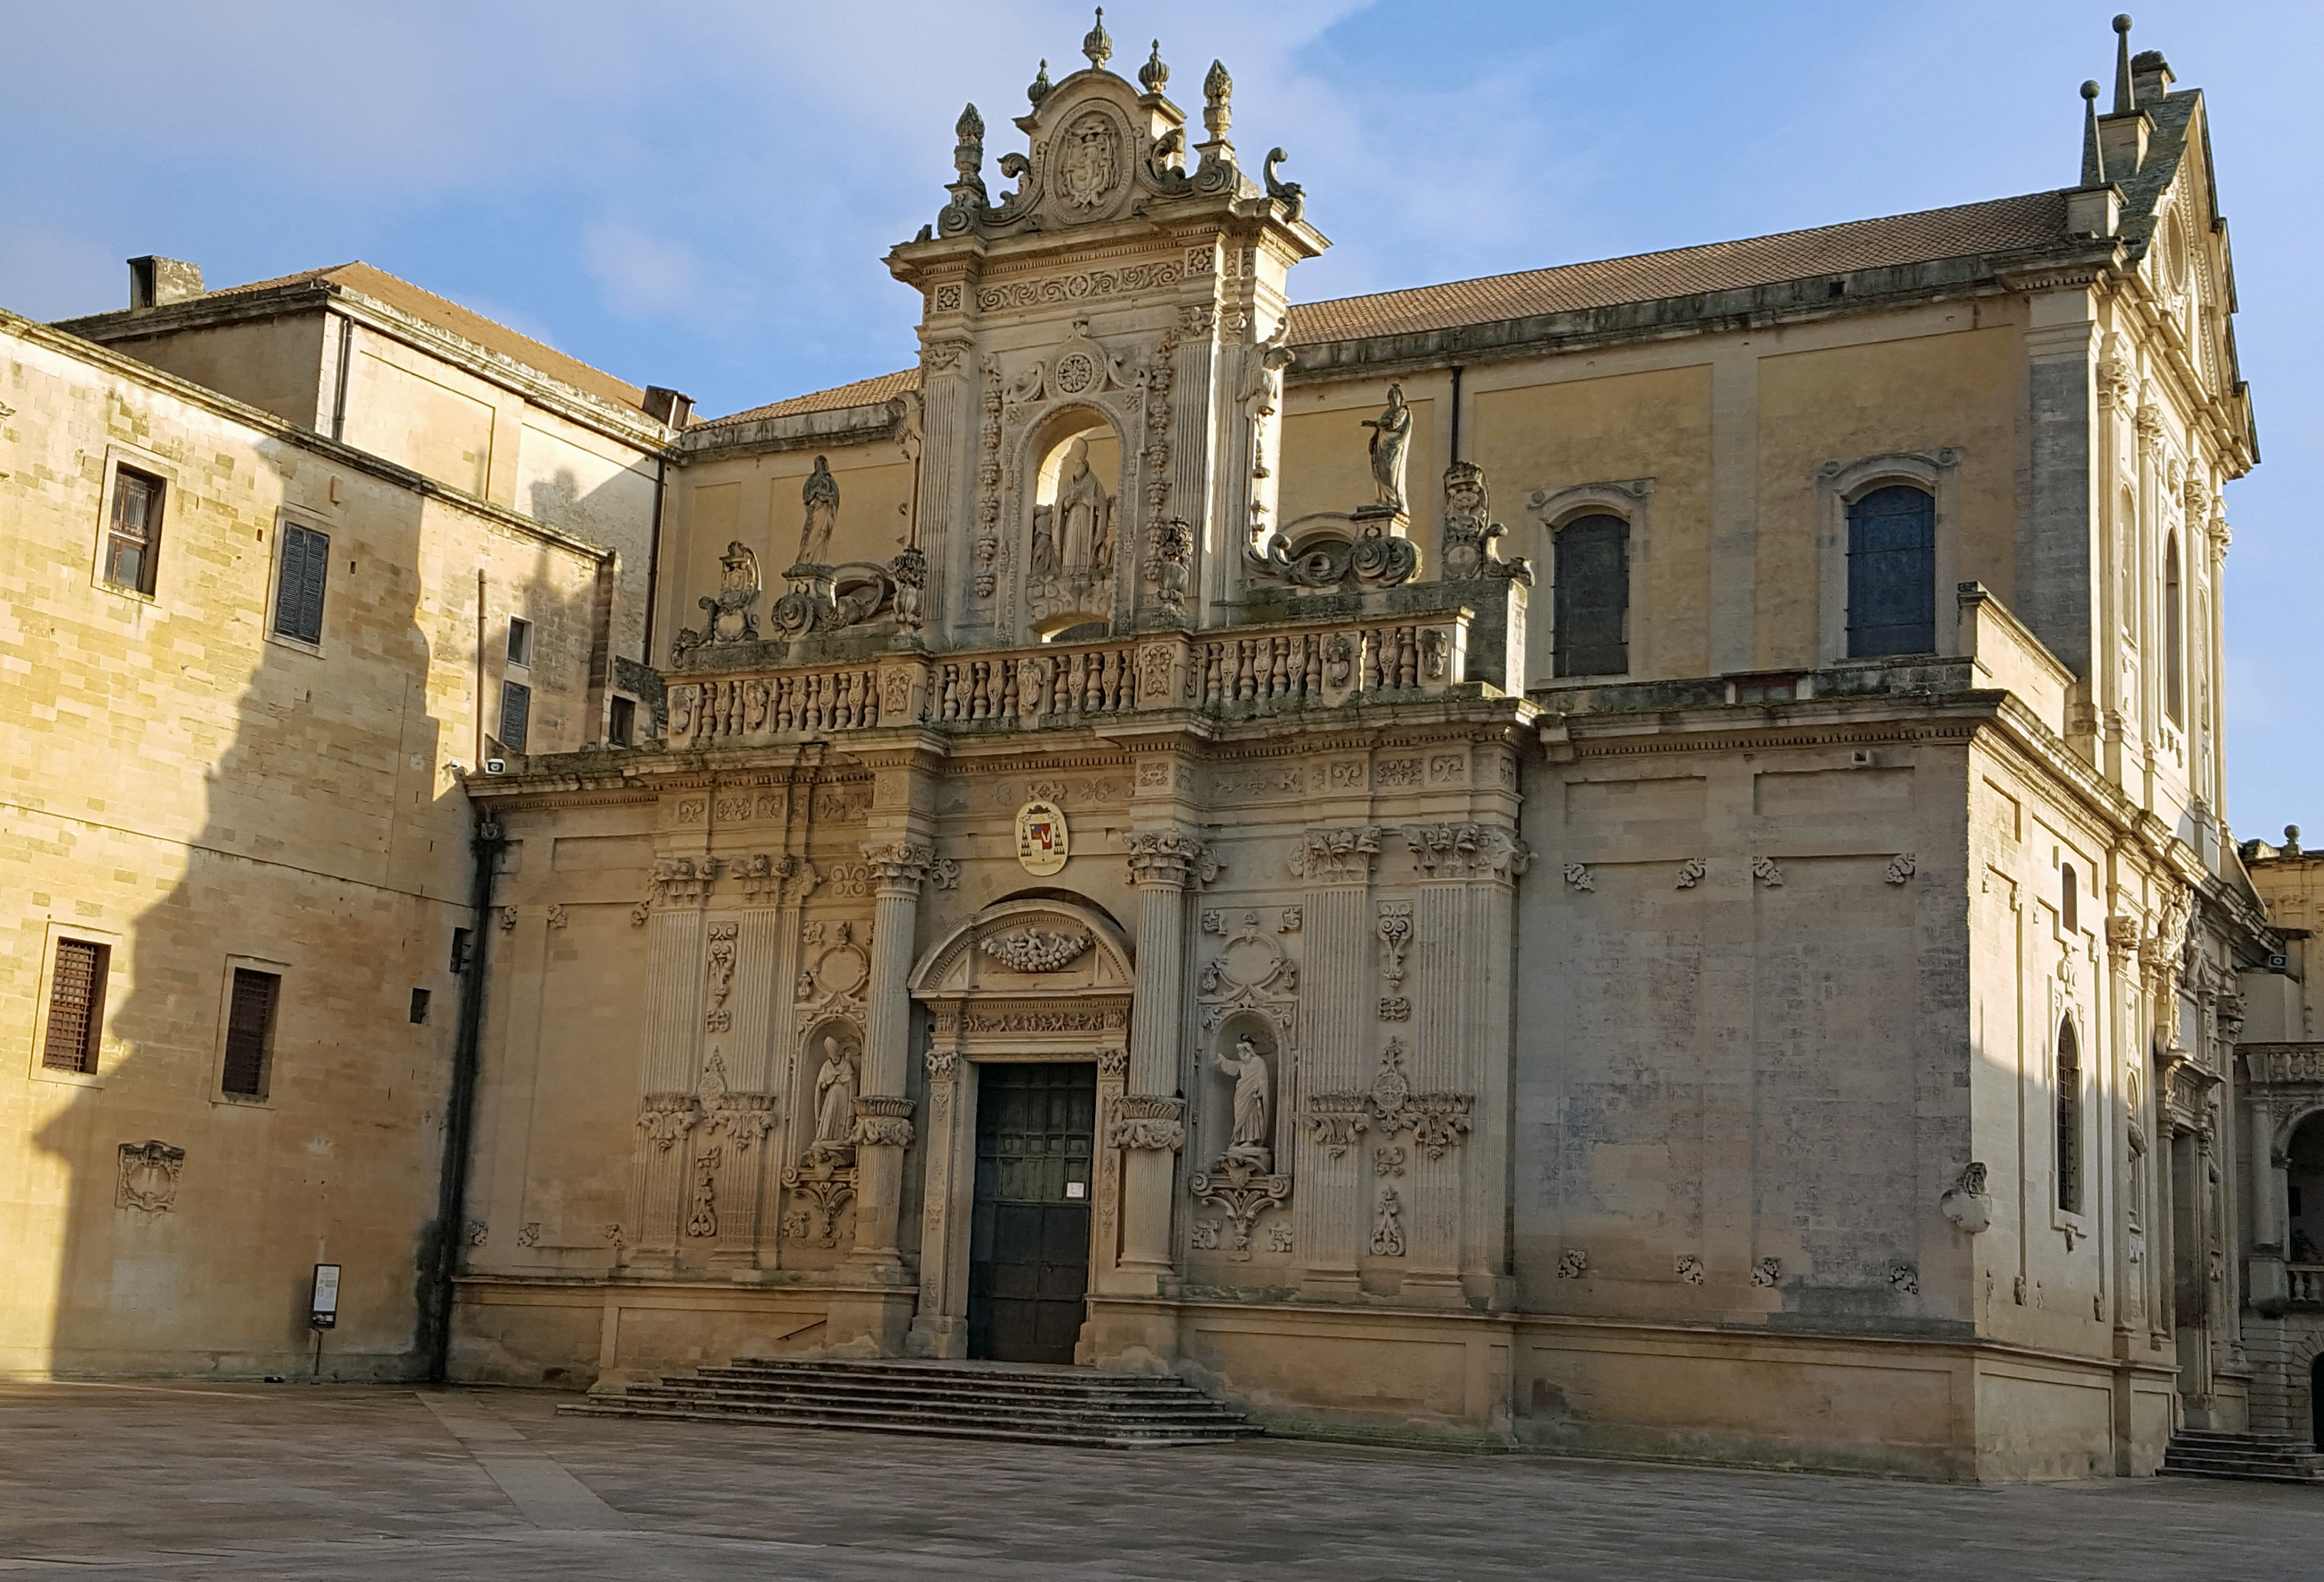 The duomo of Lecce